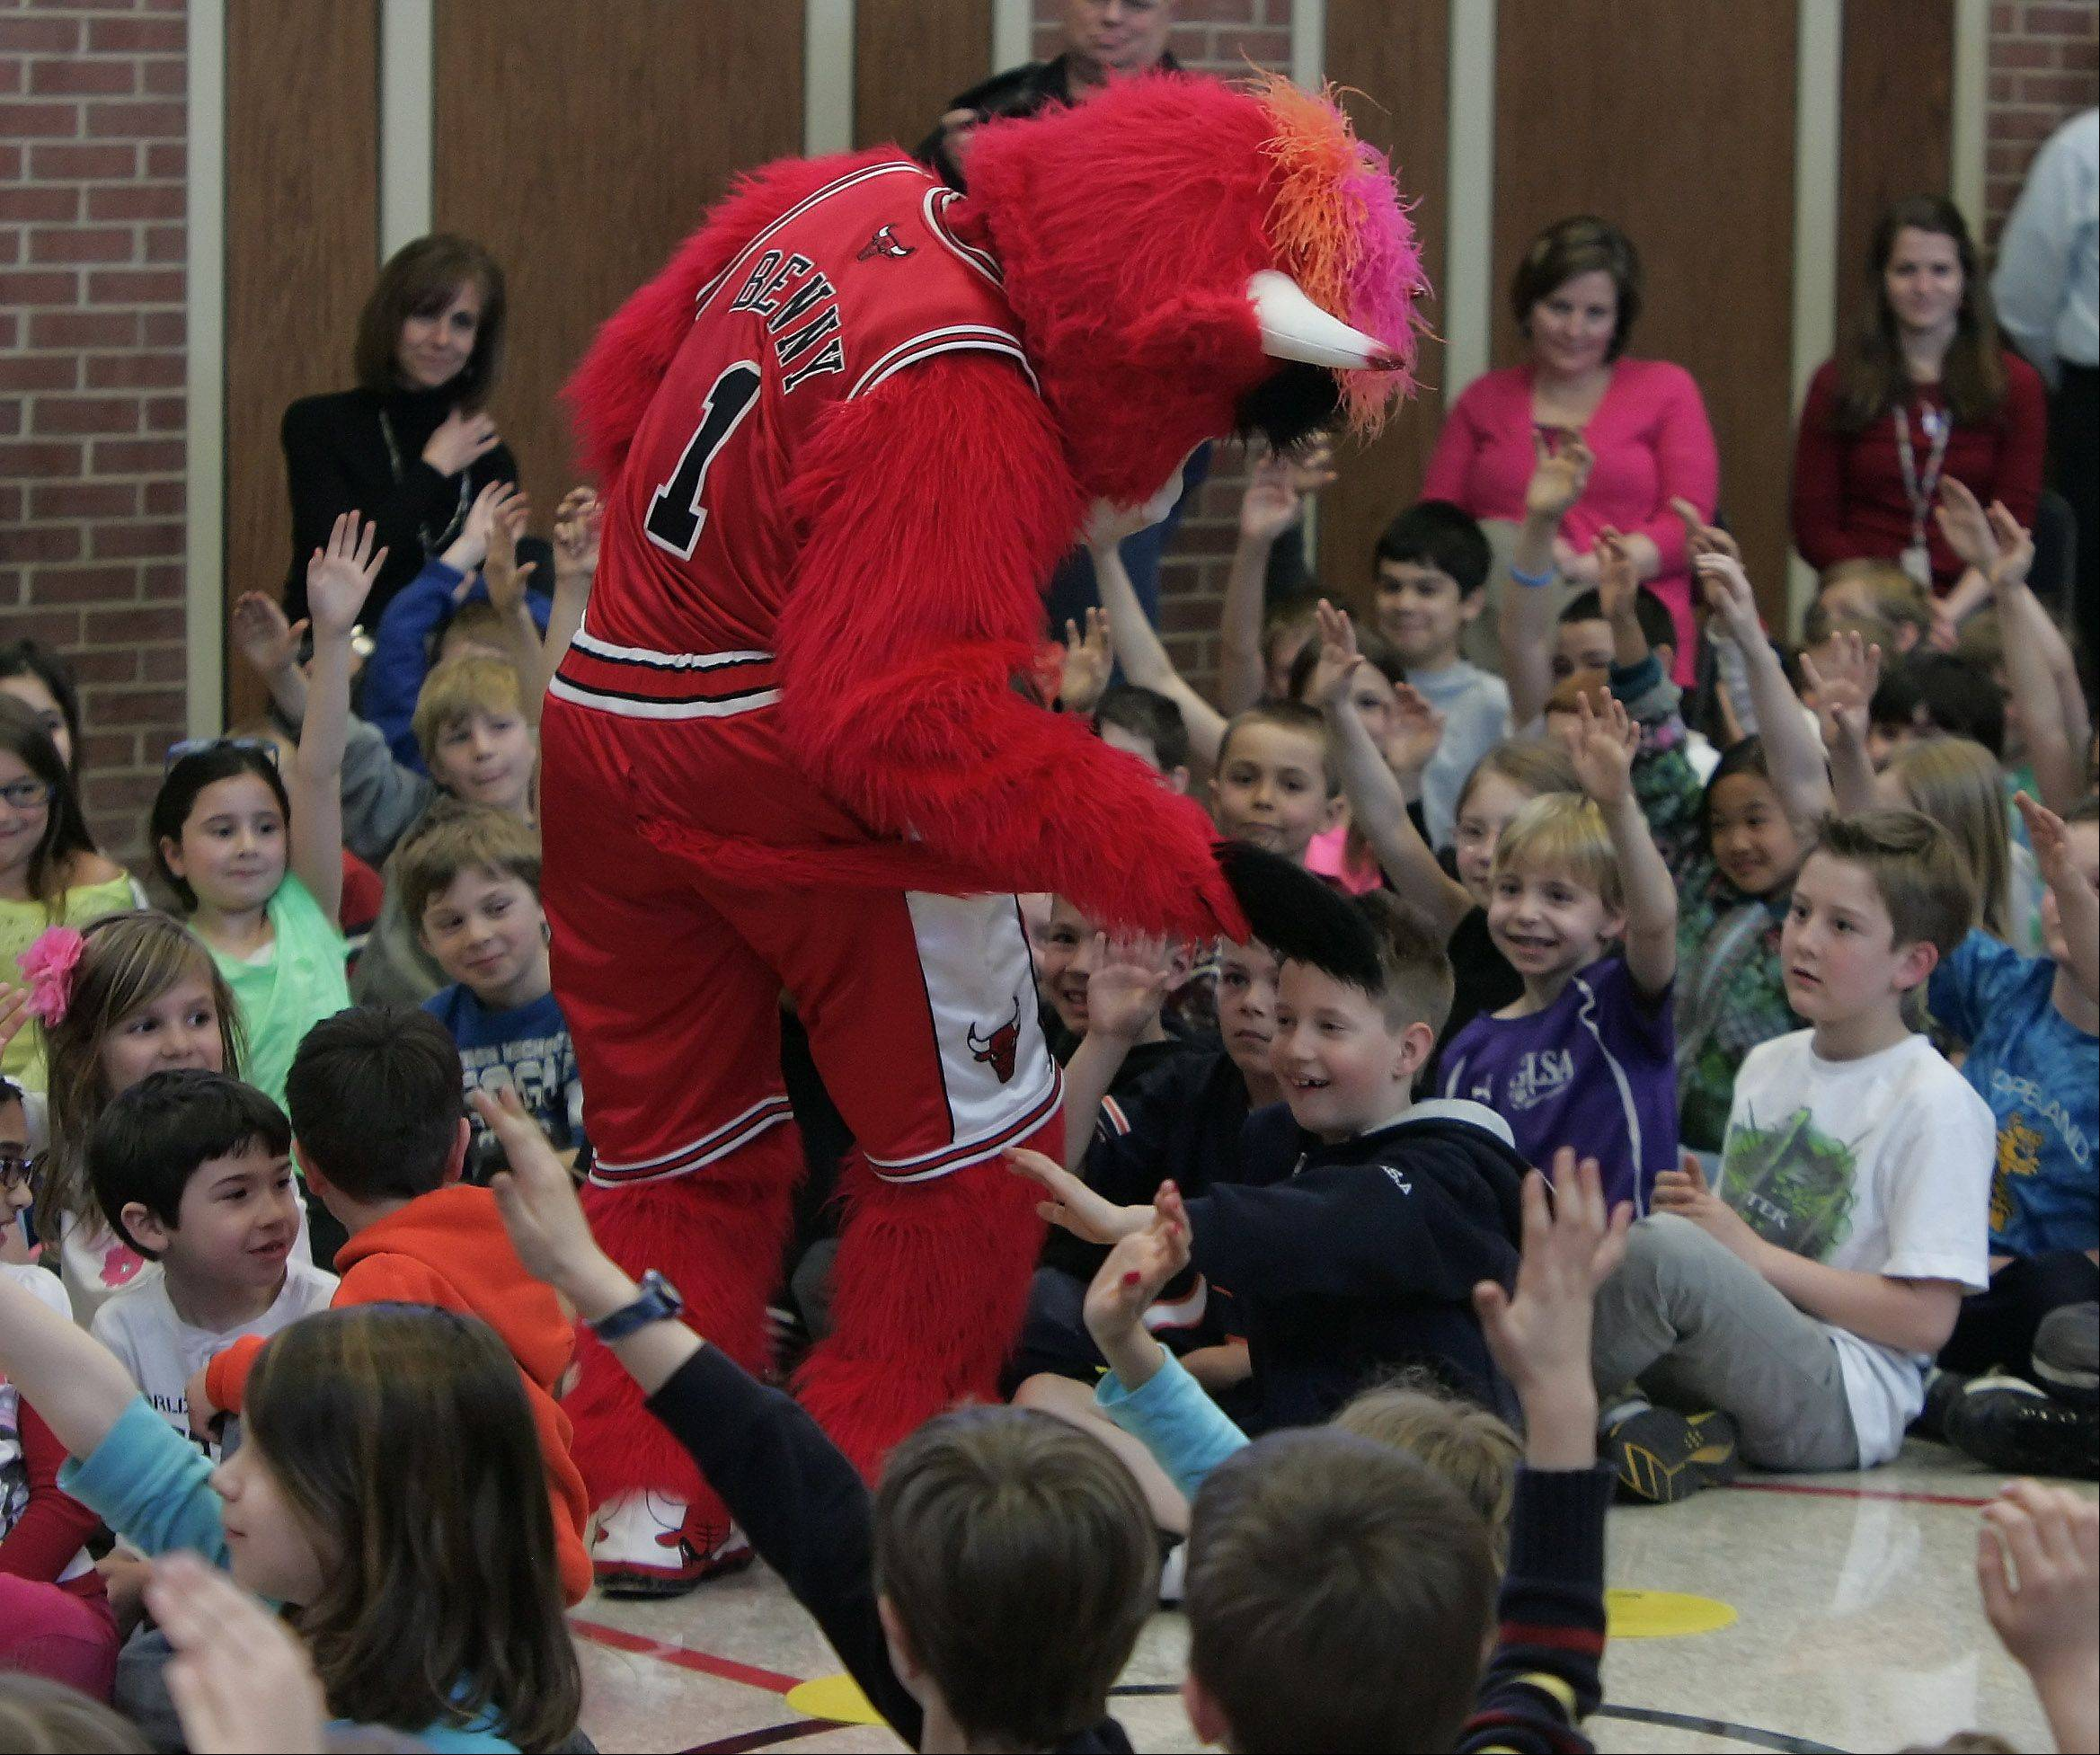 Benny the Bull wipes his tail over the face of second grader Zach Detlaff as he visits Copeland Manor School in Libertyville Tuesday. The visit was to teach about germs and proper hand washing techniques, and was sponsored by Advocate Condell Hospital and the Chicago Bulls.